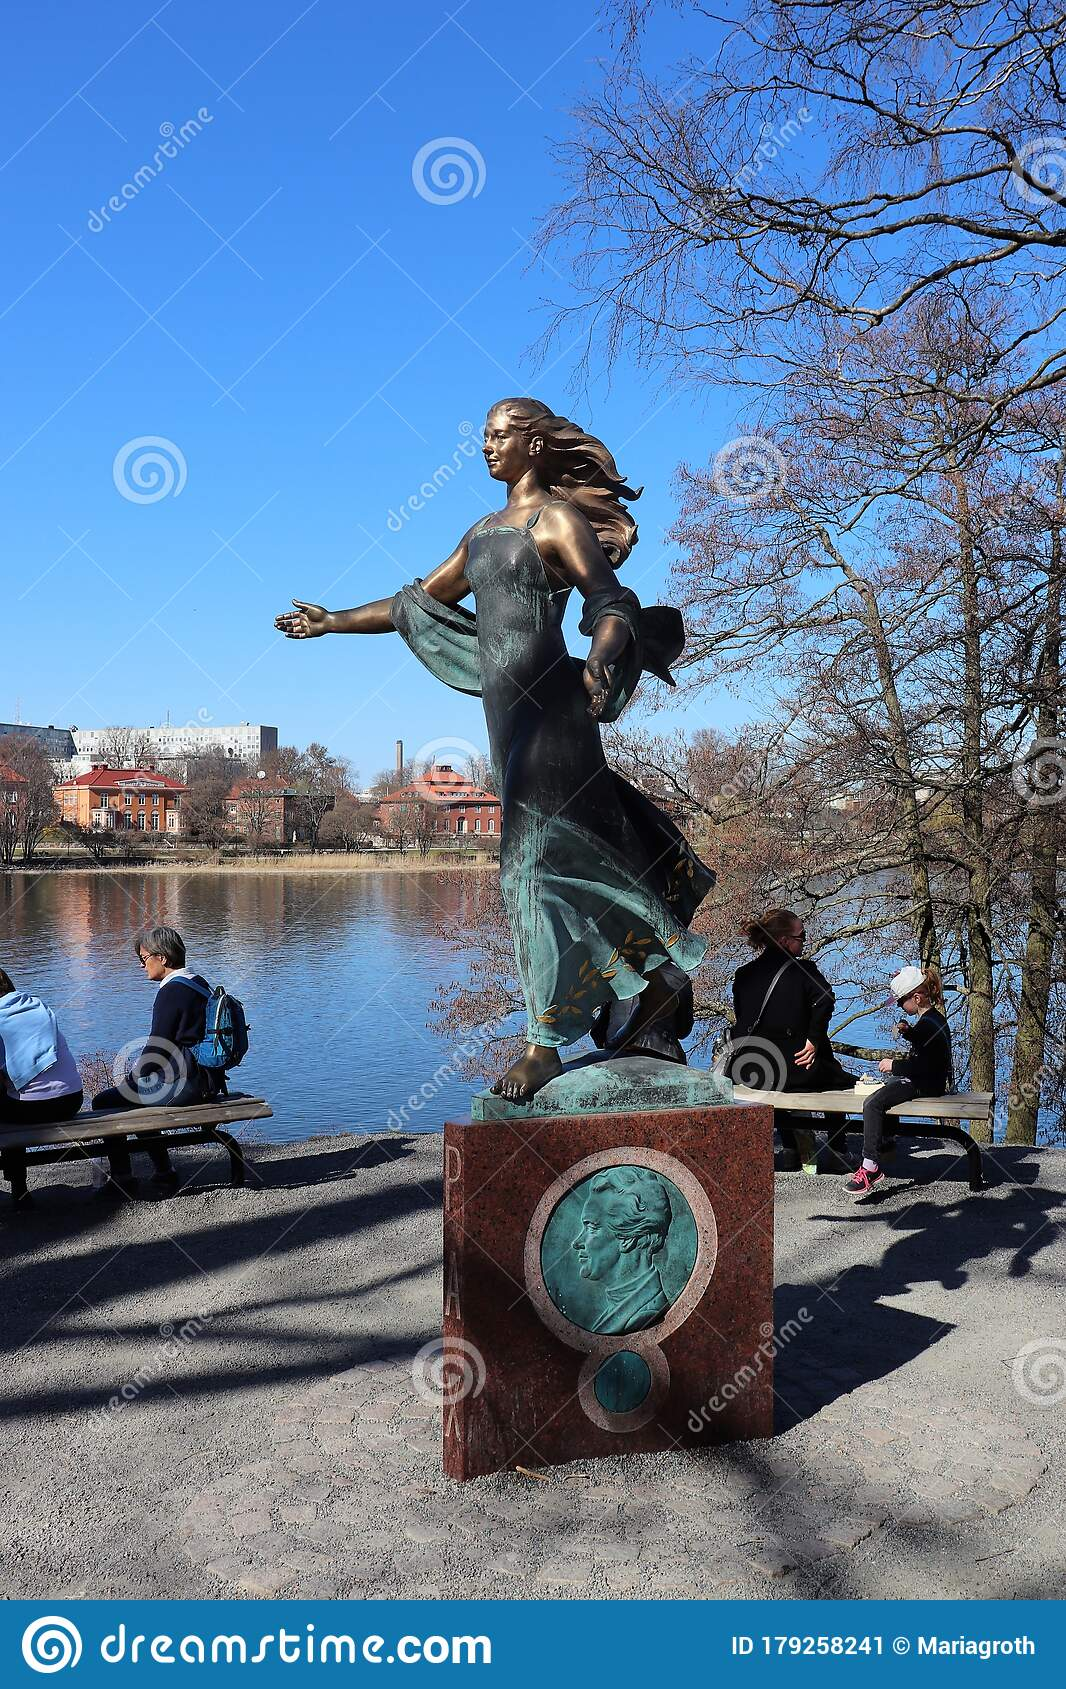 The Statue The Woman In Peace Work At Djurgarden Editorial Photo Image Of Decoration Depicted 179258241